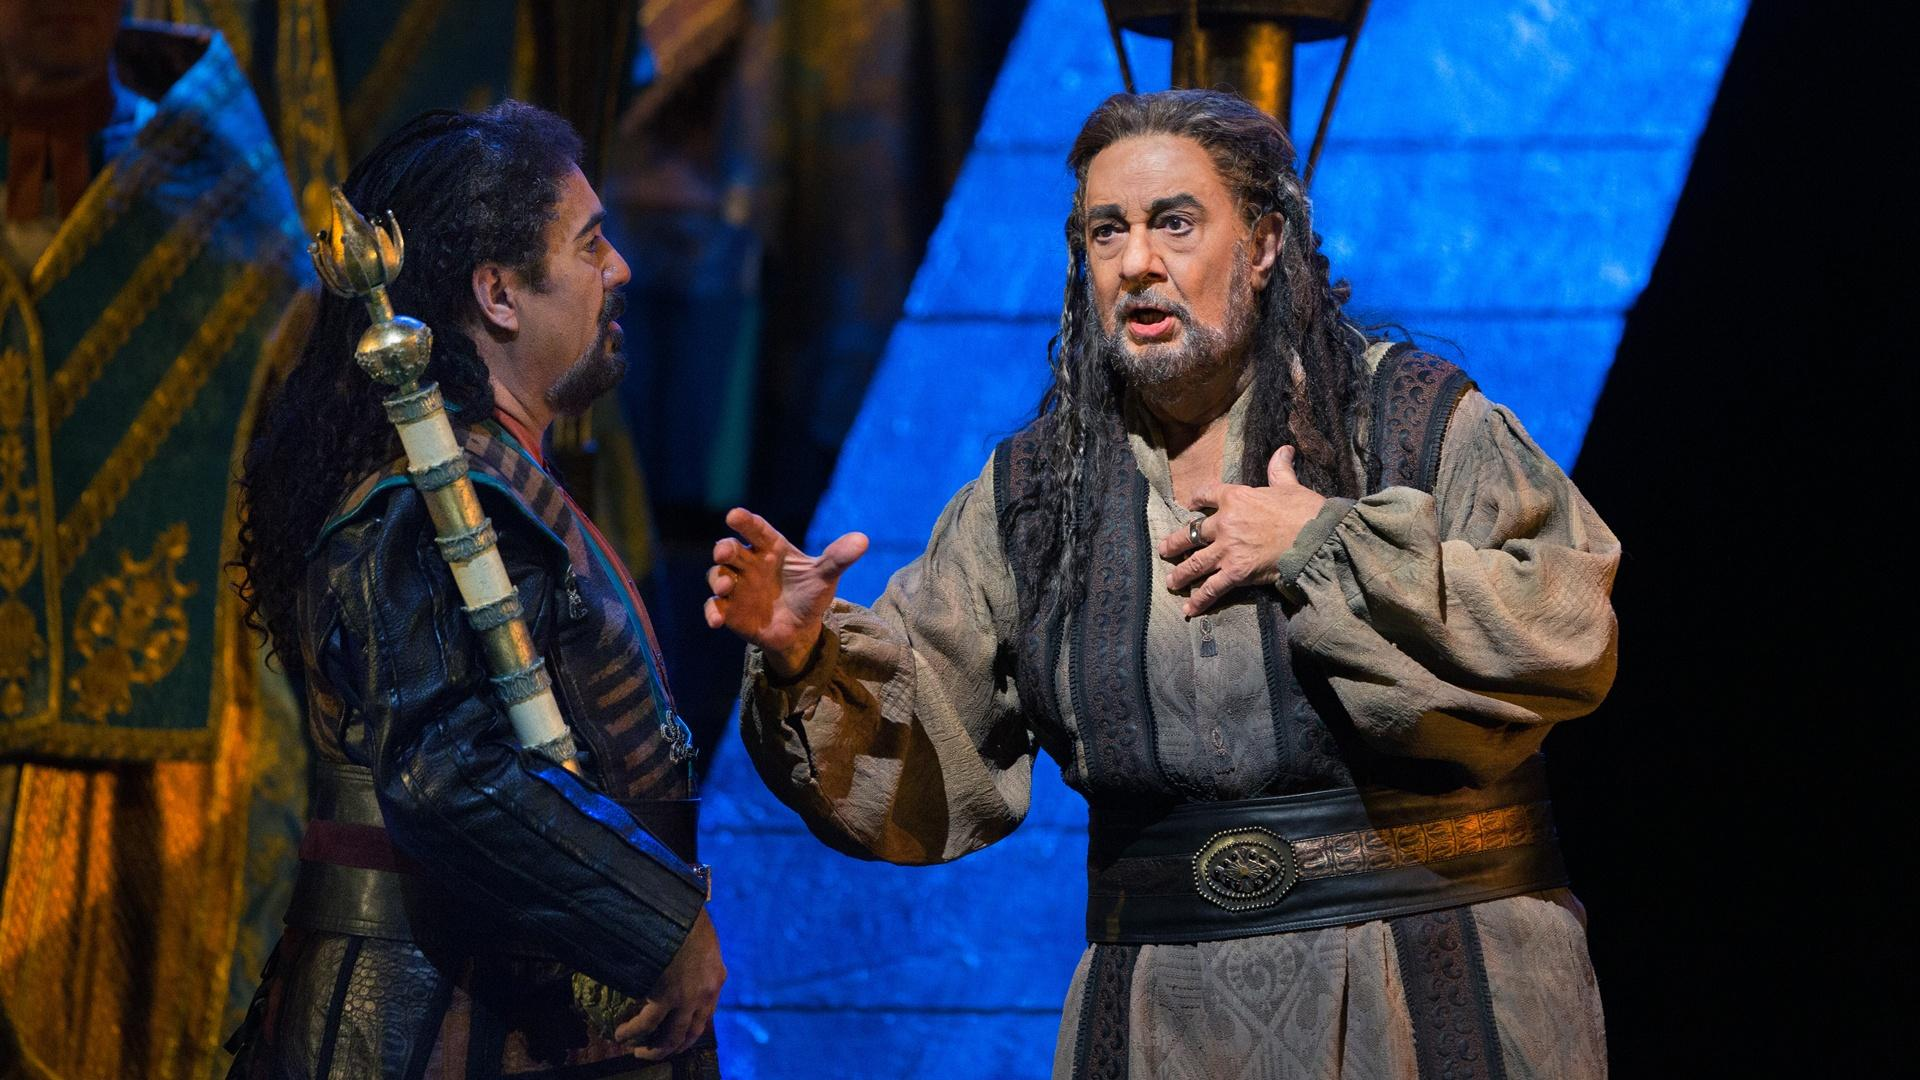 James Levine, Placido Domingo, and Peter Gelb | G